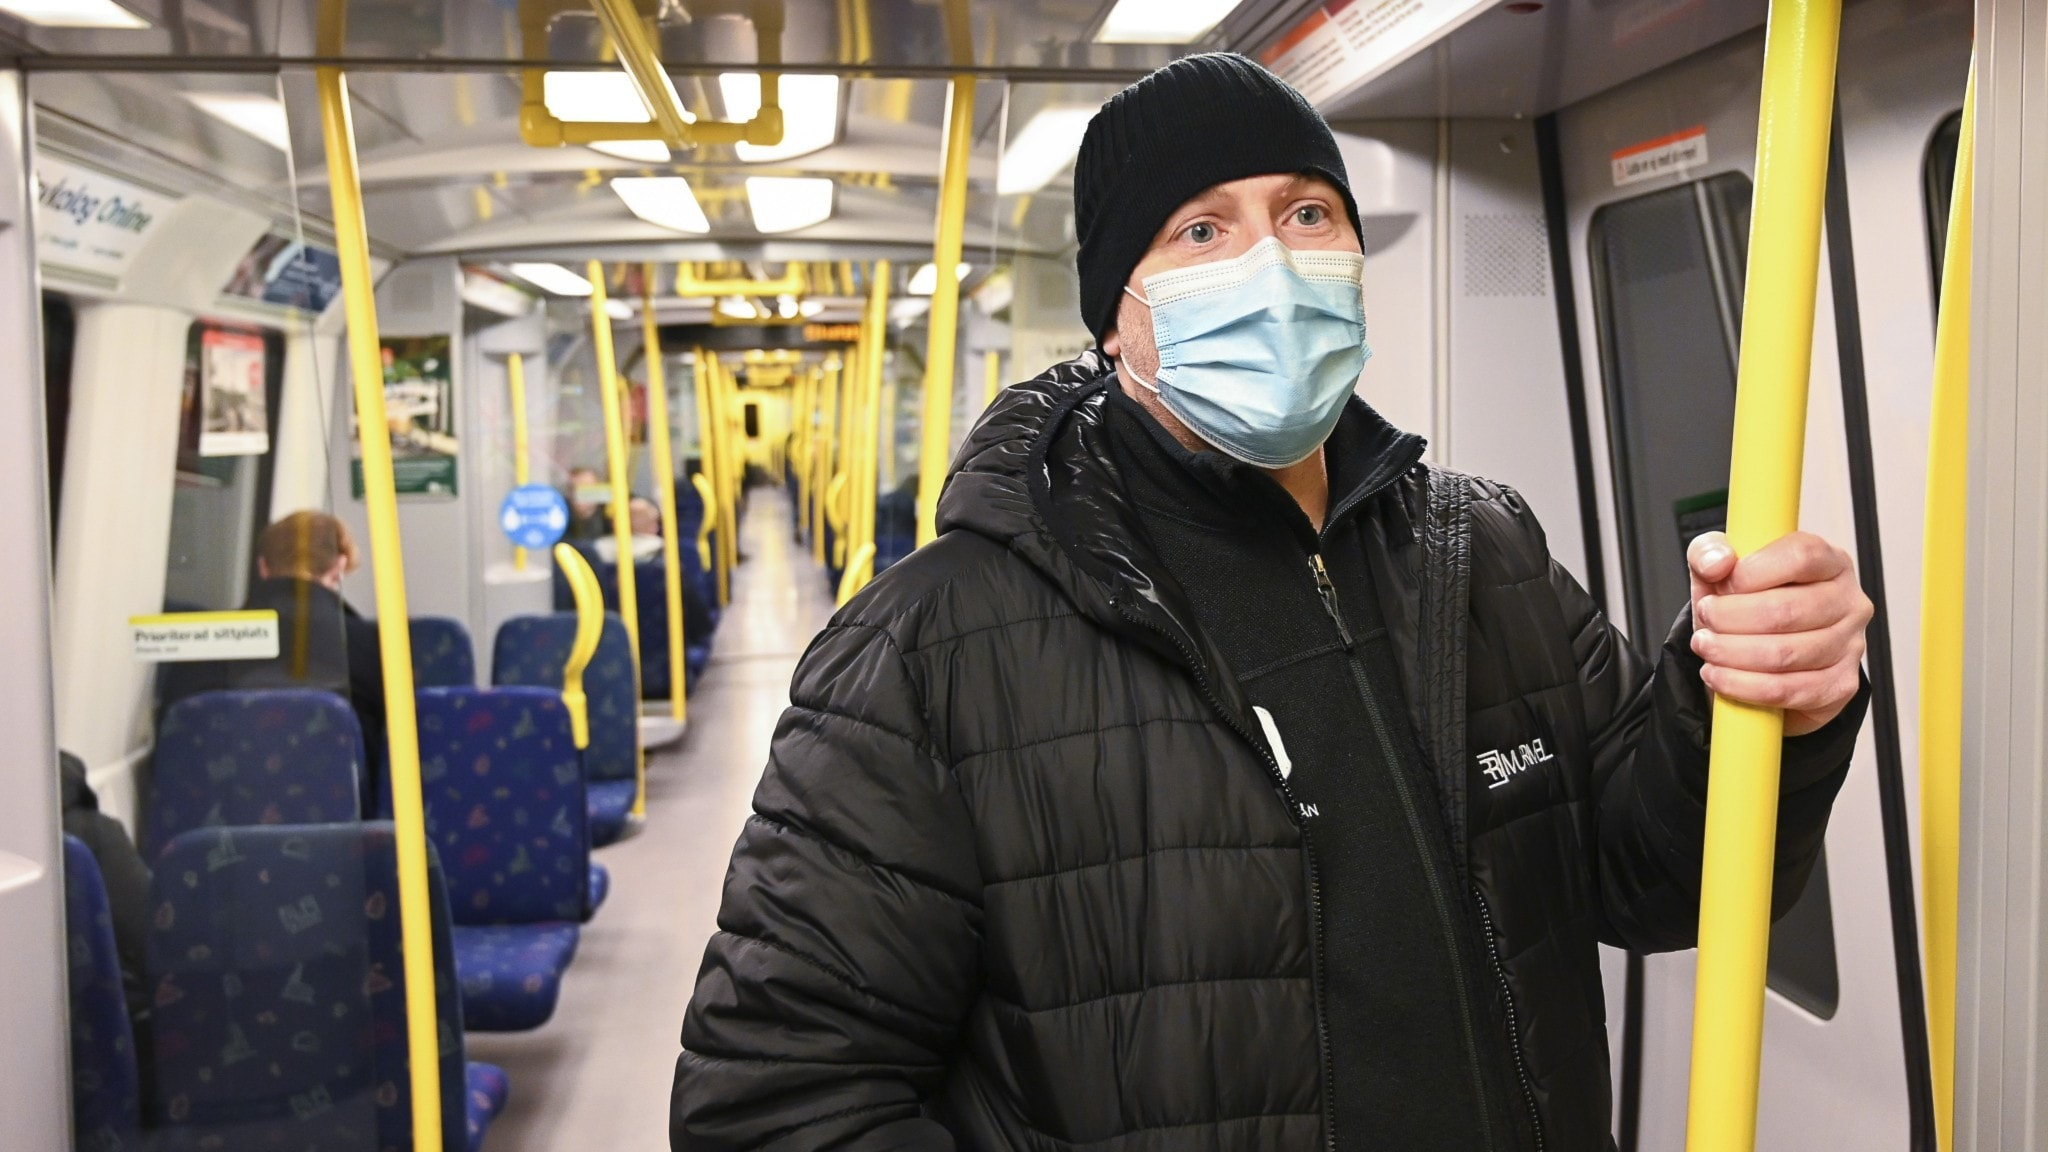 A person standing in an underground train, wearing a medical mask